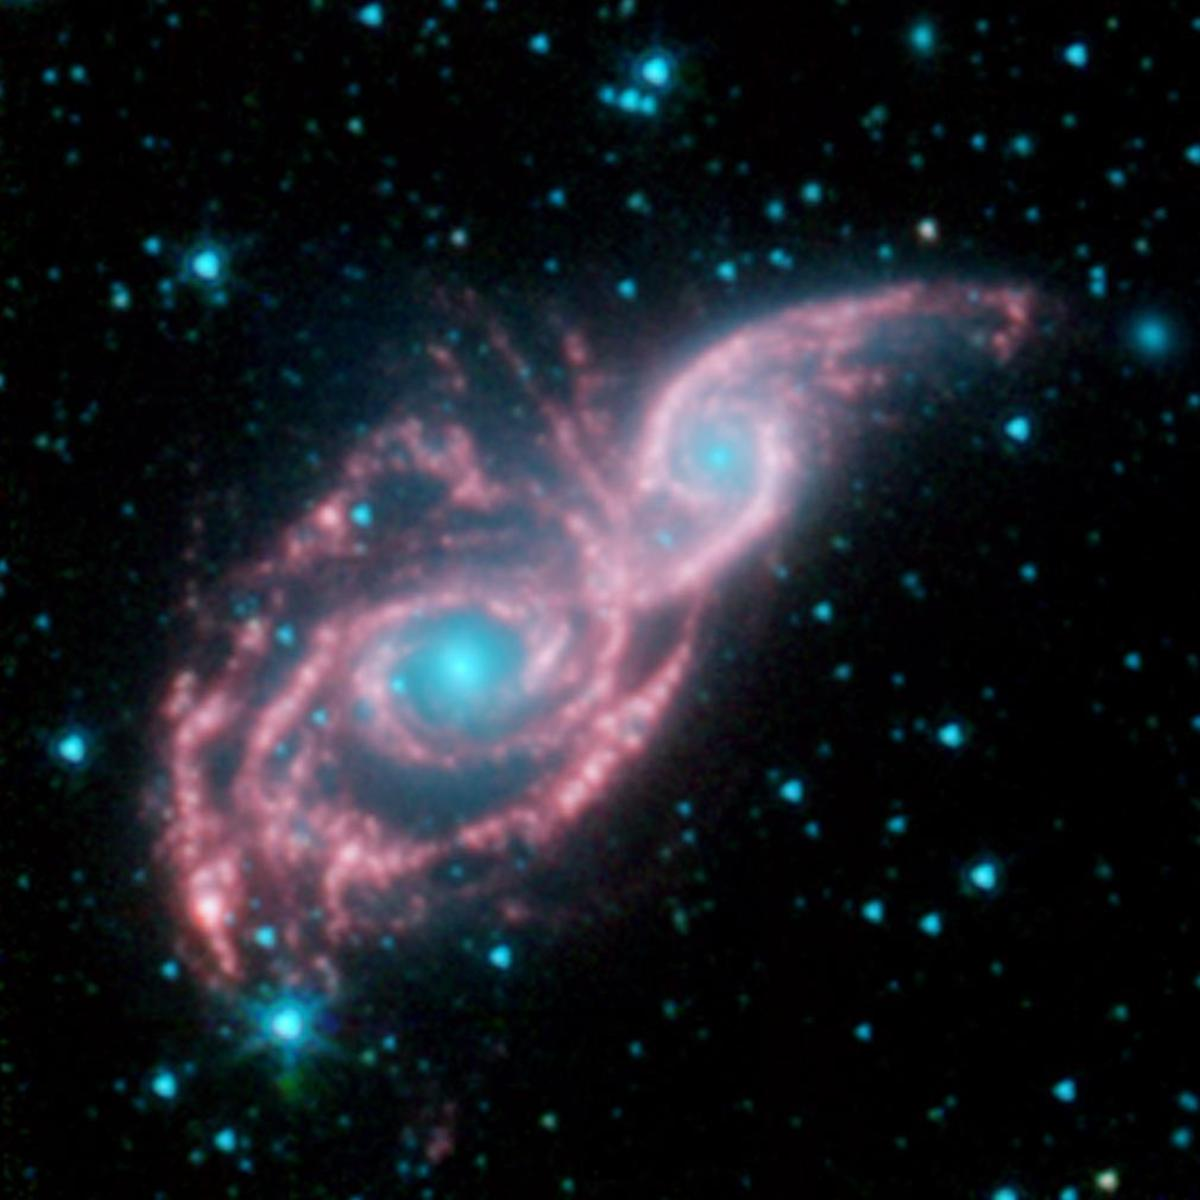 Merging Galaxies. Source: NASA/JPL-Caltech.